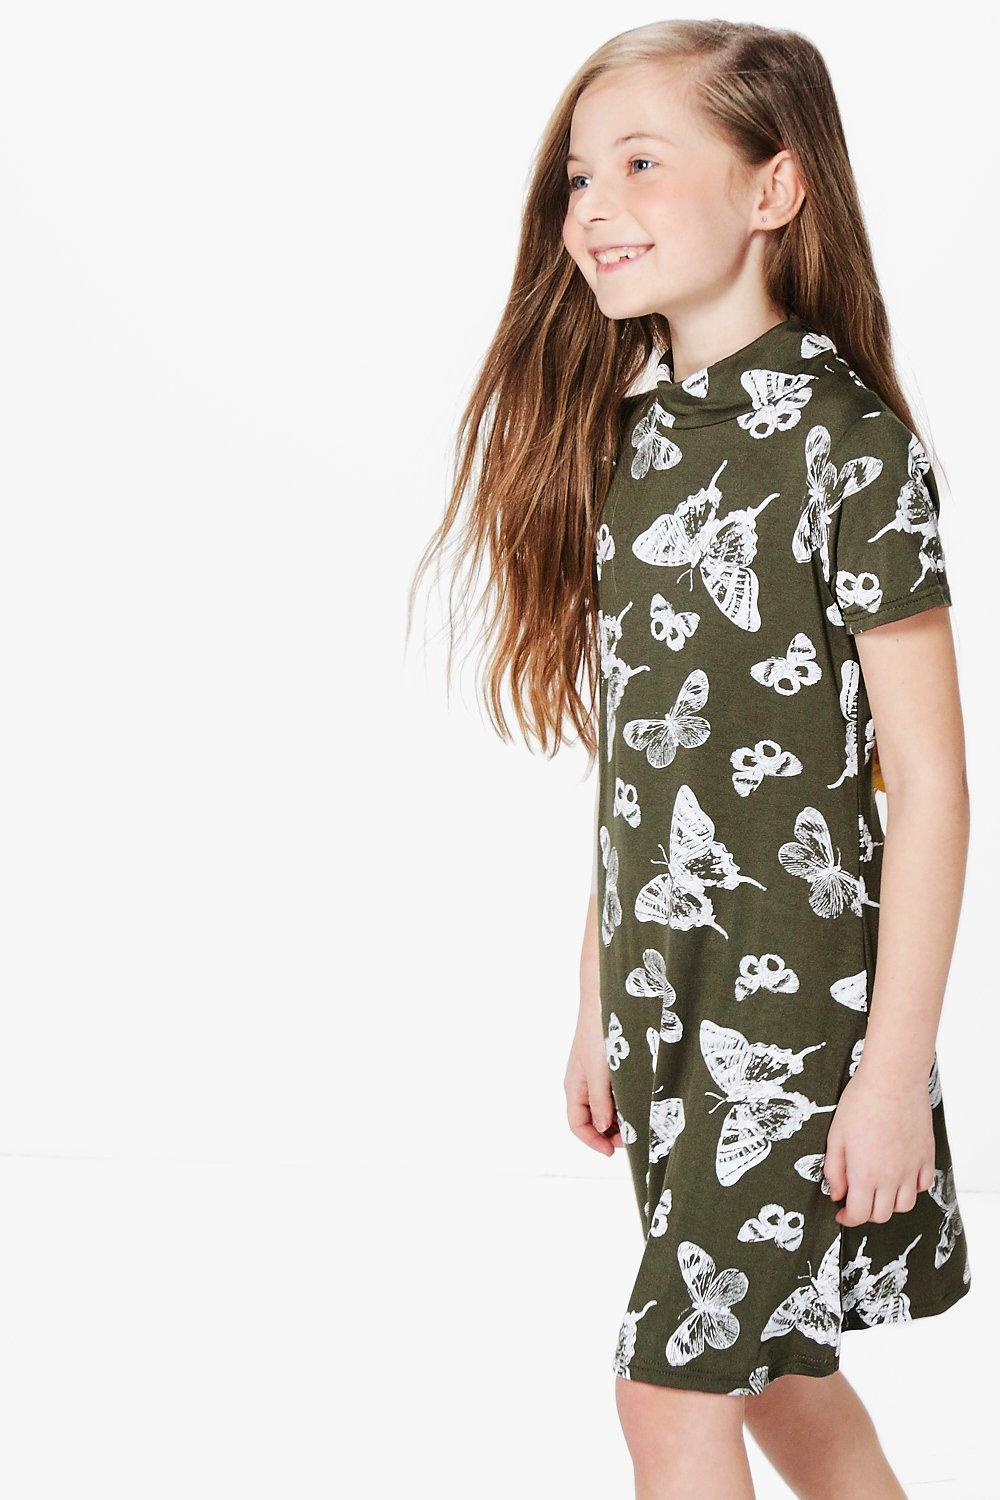 Girls Clothing | Buy Clothes for Girls Online at Boohoo